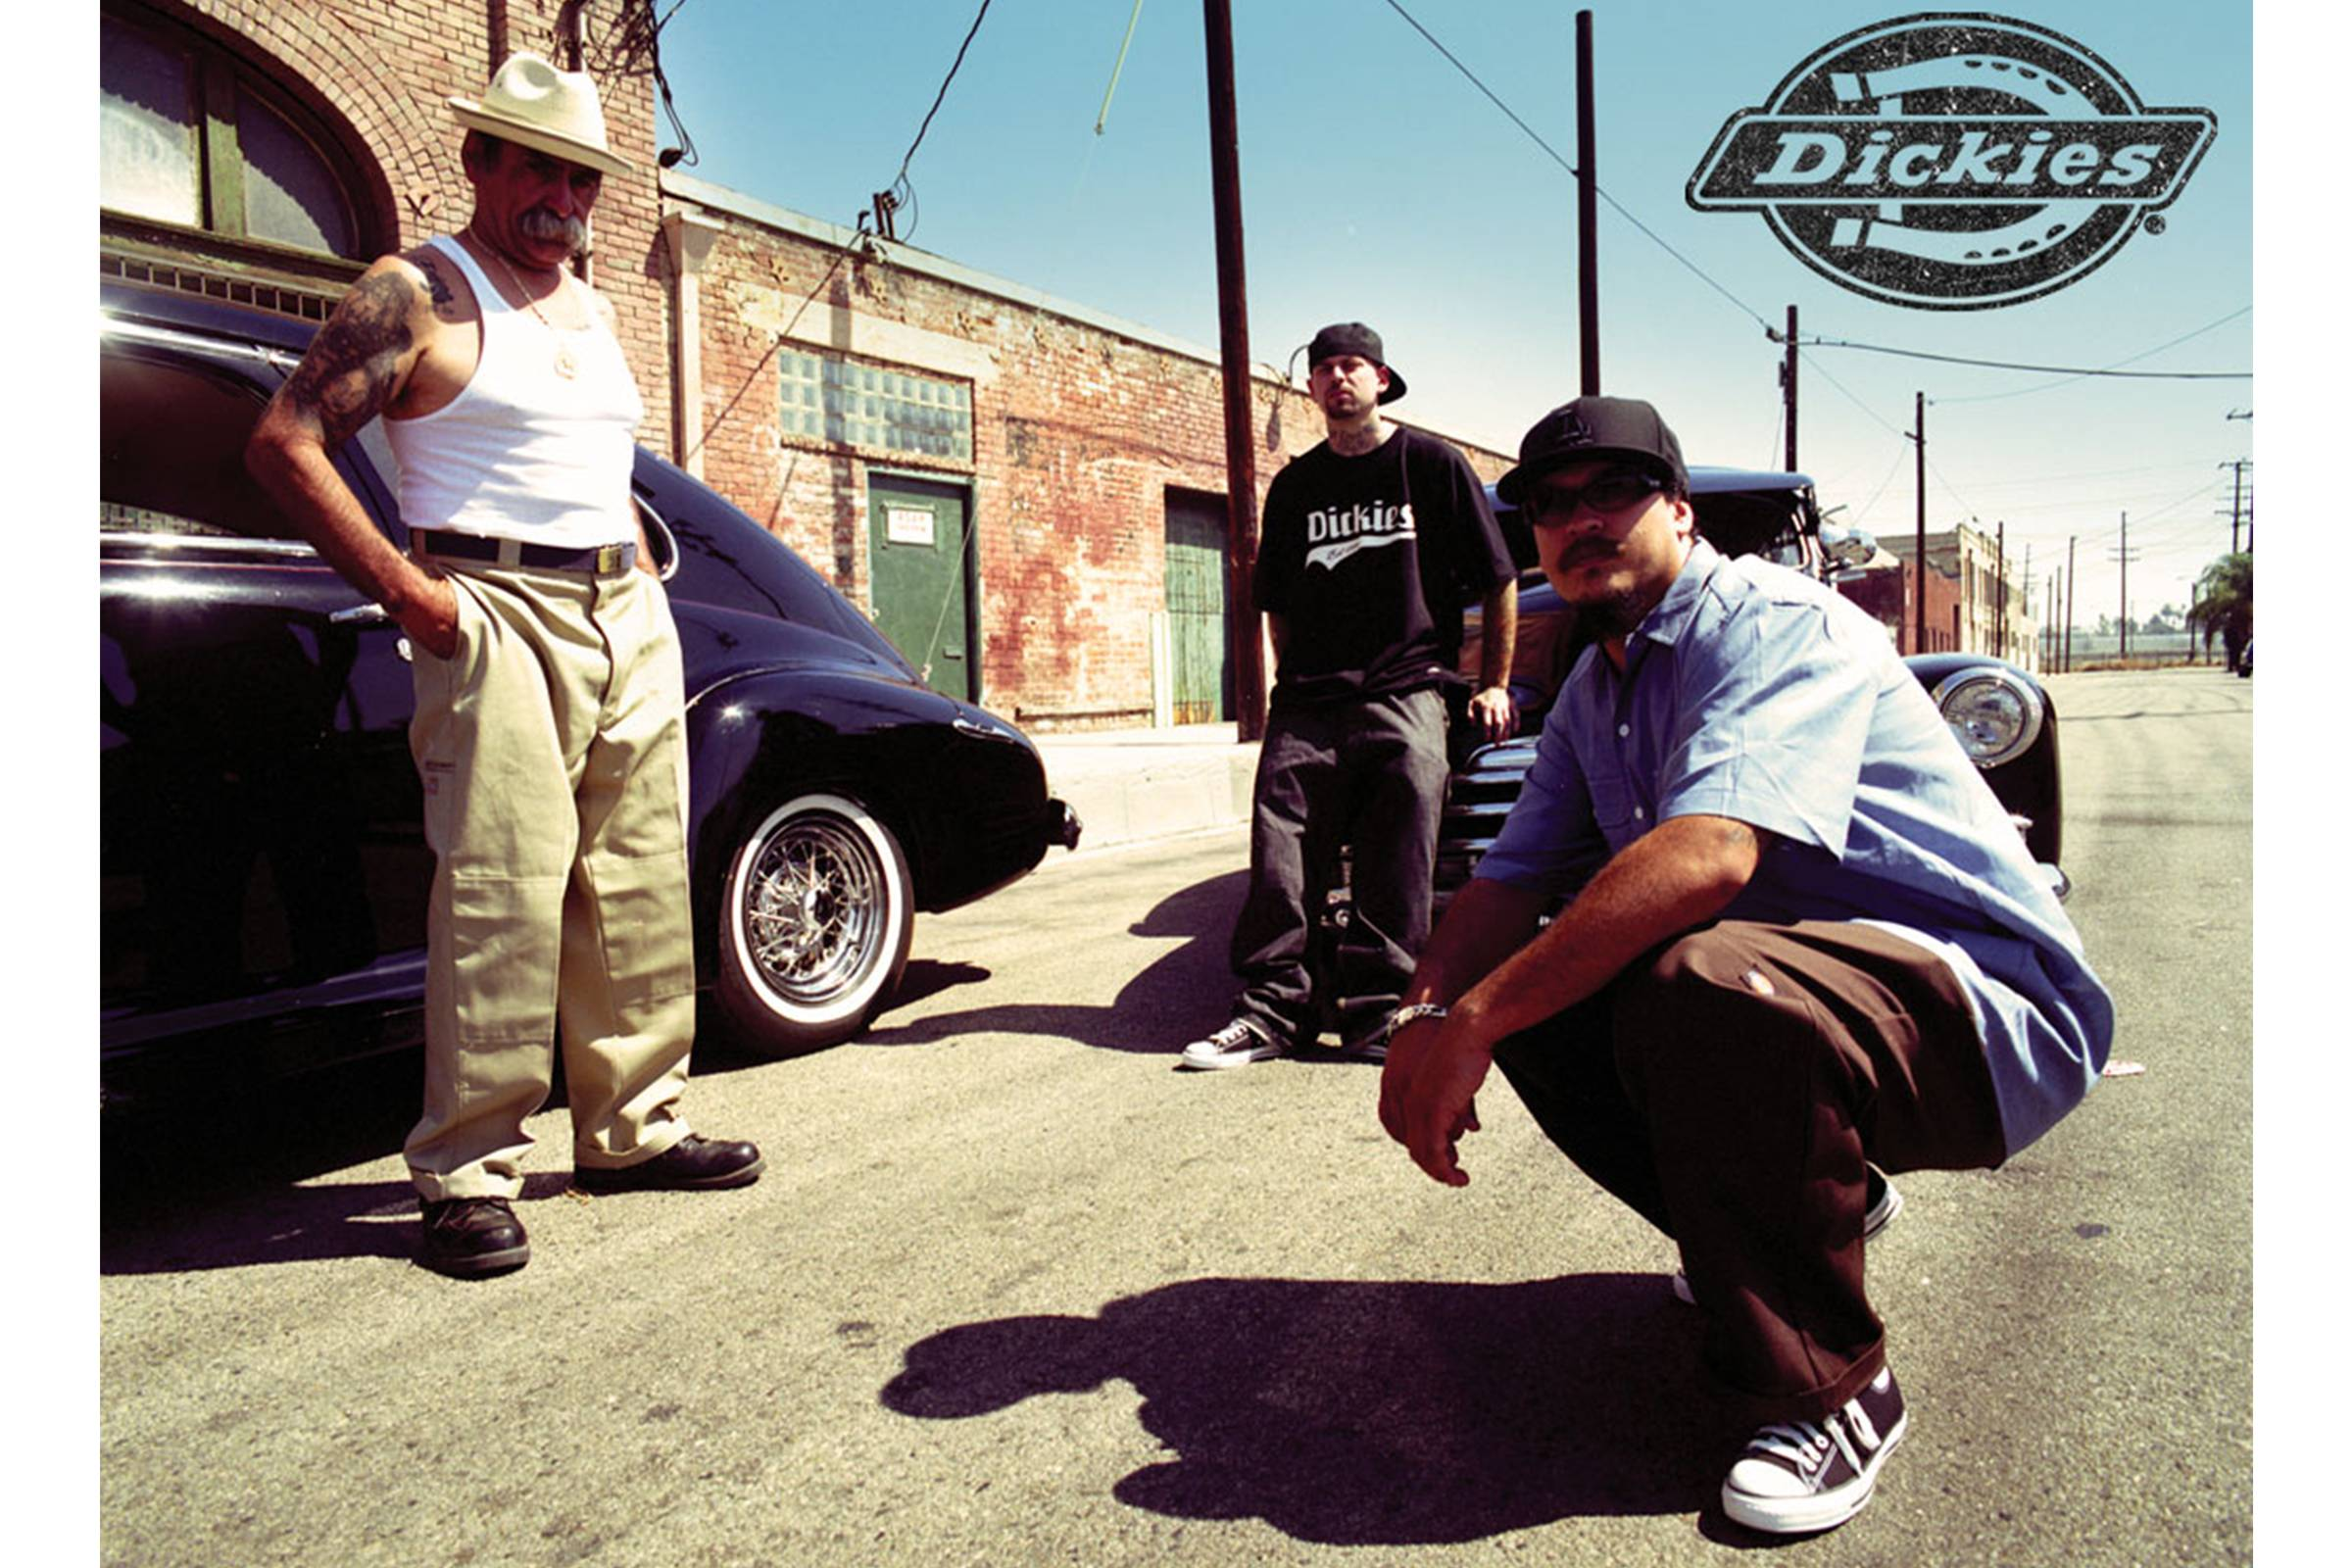 Dickies e Cholos